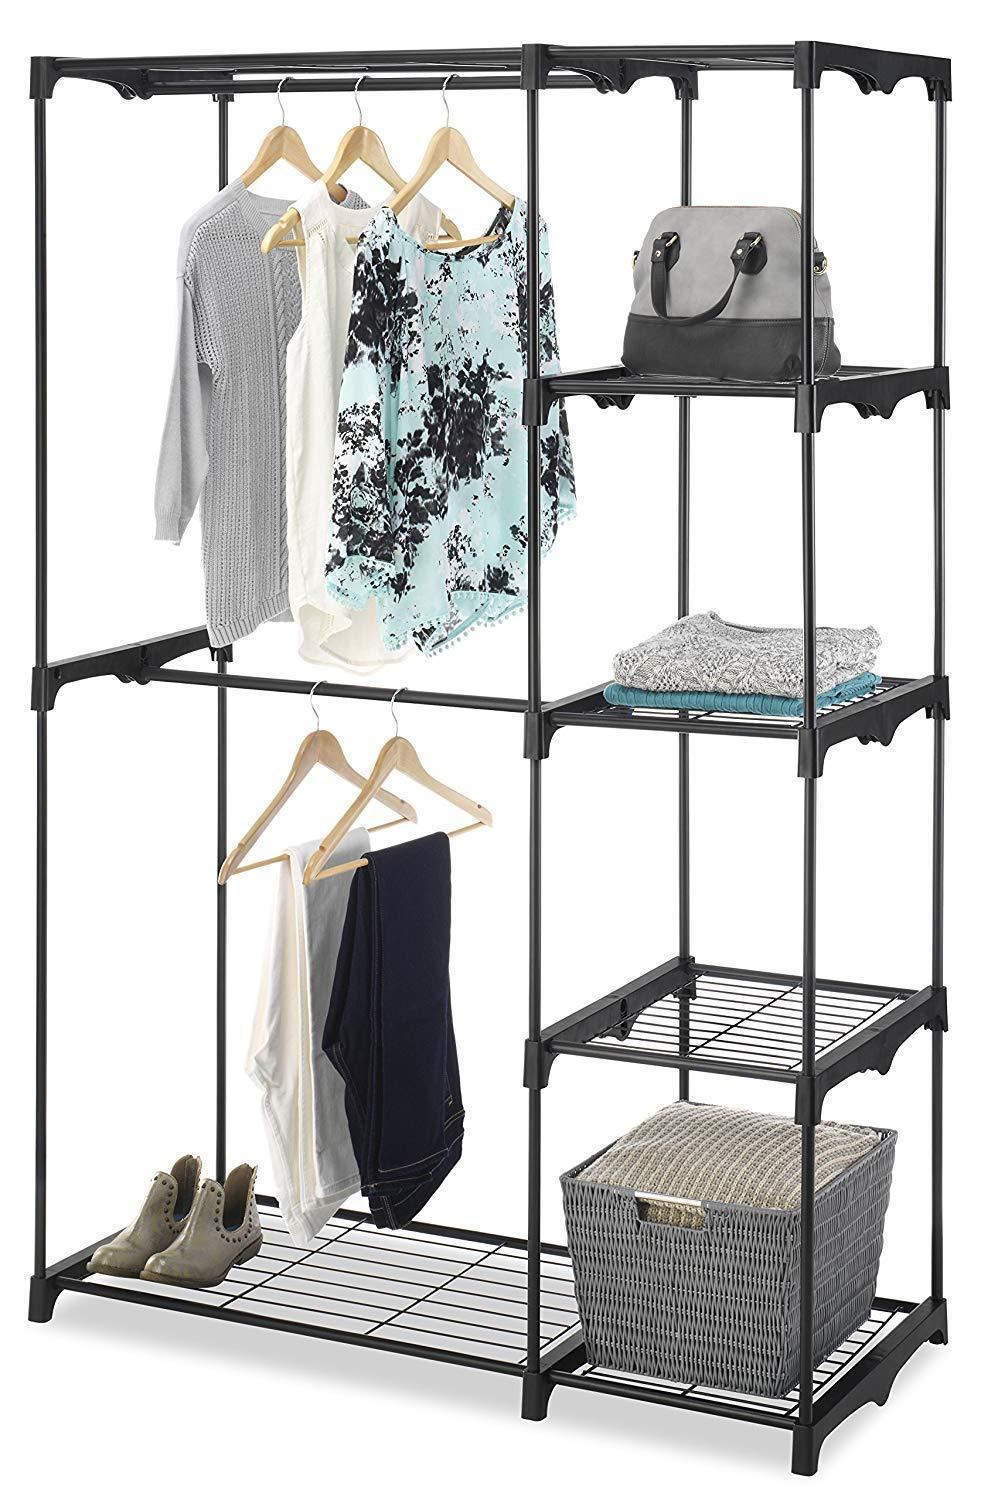 Whitmor Freestanding Portable Closet Organizer - Heavy Duty Black Steel Frame - Double Rod Wardrobe Cloths Storage With 5 Shelves & Shoe Rack for Home or Office - Size: 45-1/4 x 19-1/4 x 68